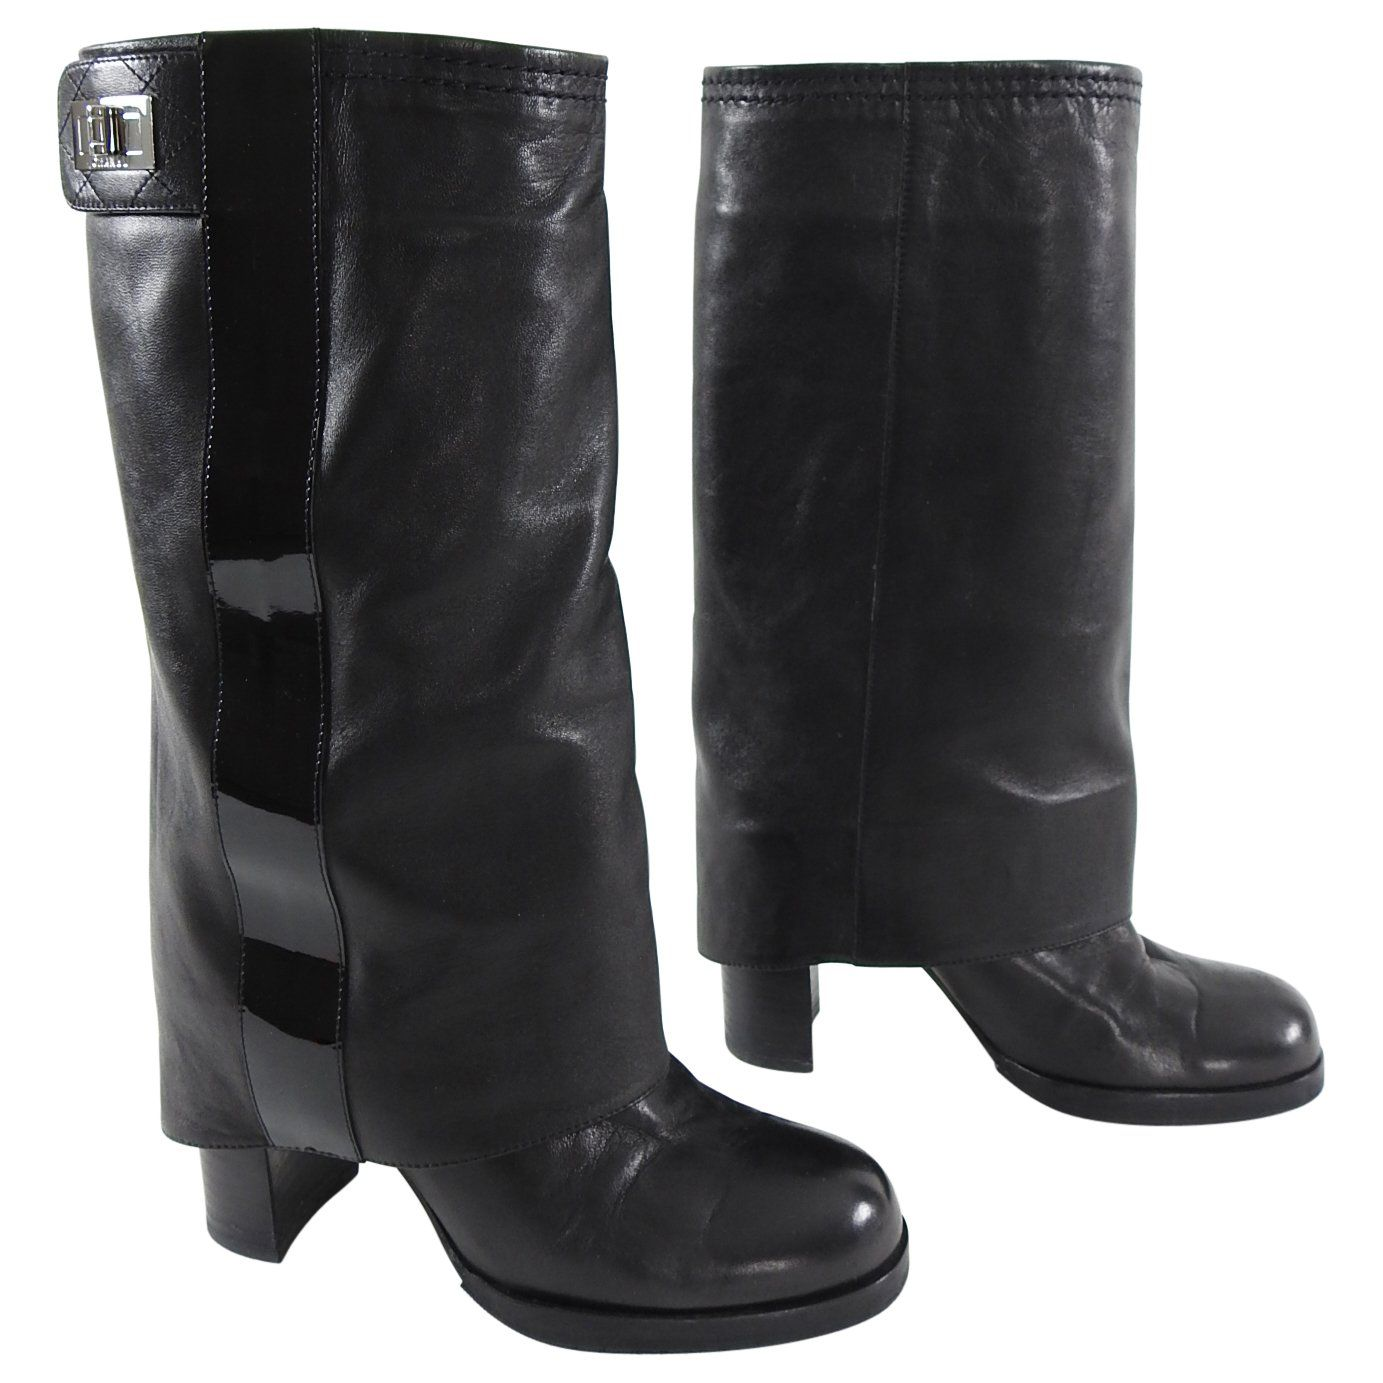 Patent Reissue Mid Calf Boots - 6